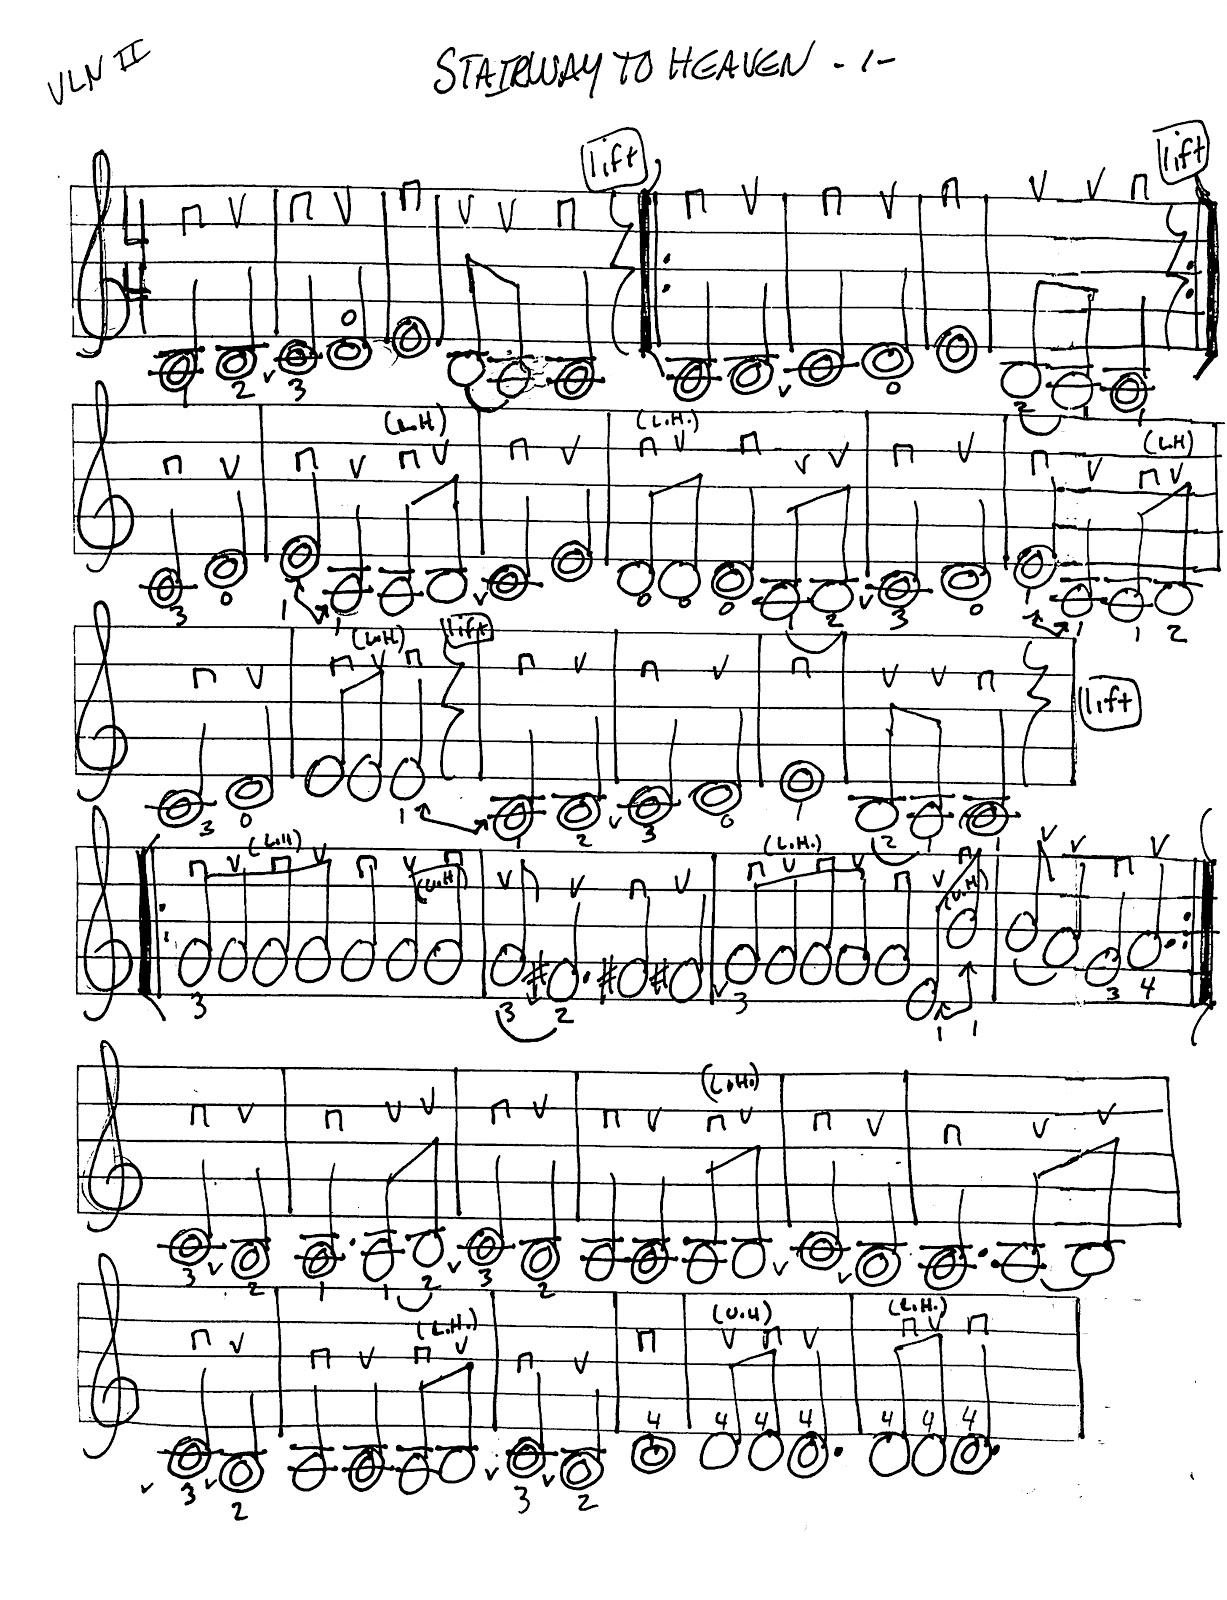 Miss Jacobson's Music: STAIRWAY TO HEAVEN WORKSHEETS